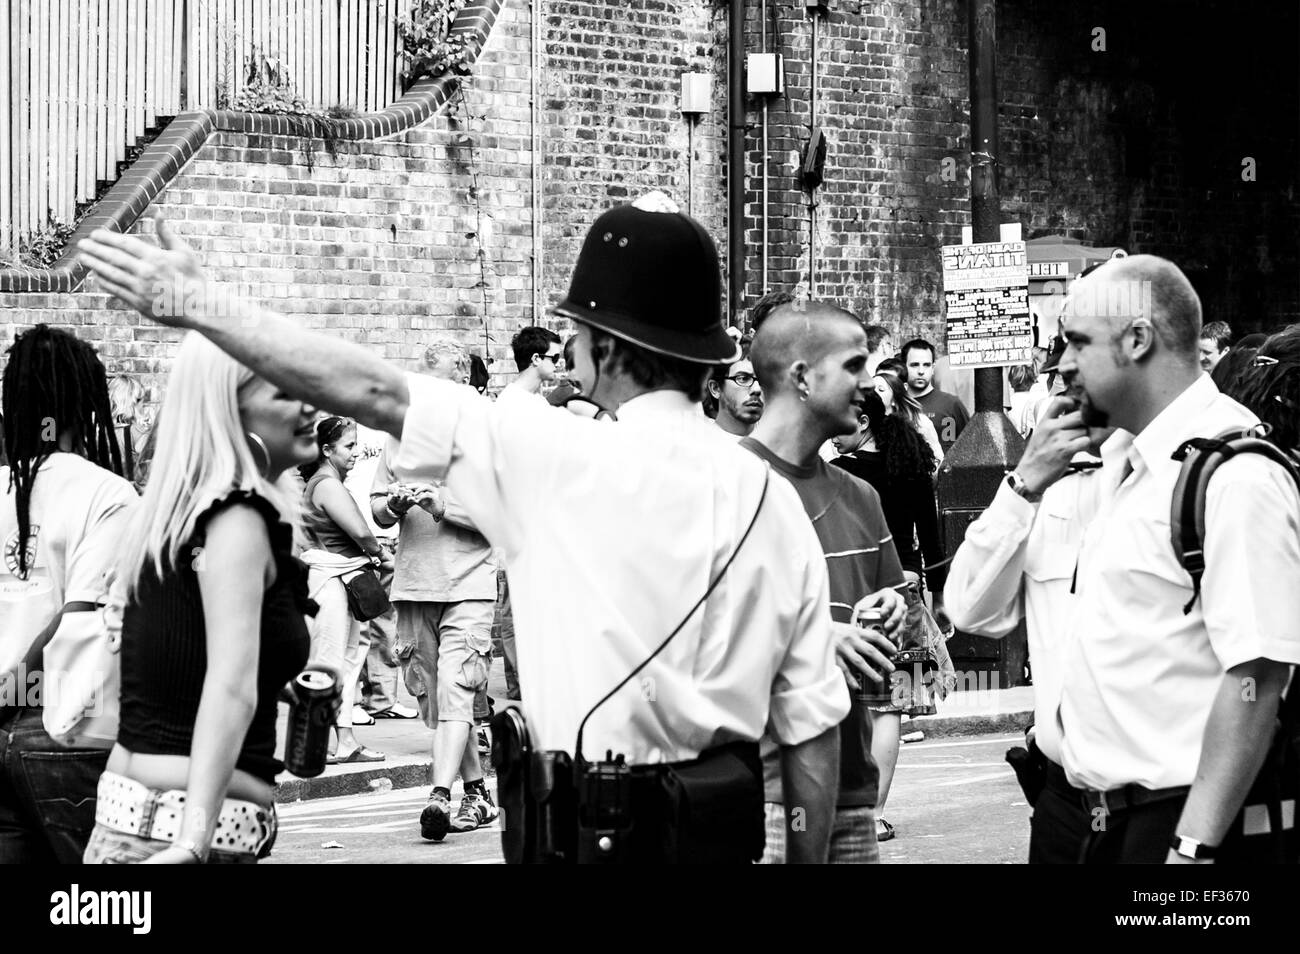 LONDON, UK- August 28th 2005: At the Notting Hill Carnival, policeman with his arm up shows direction to member - Stock Image